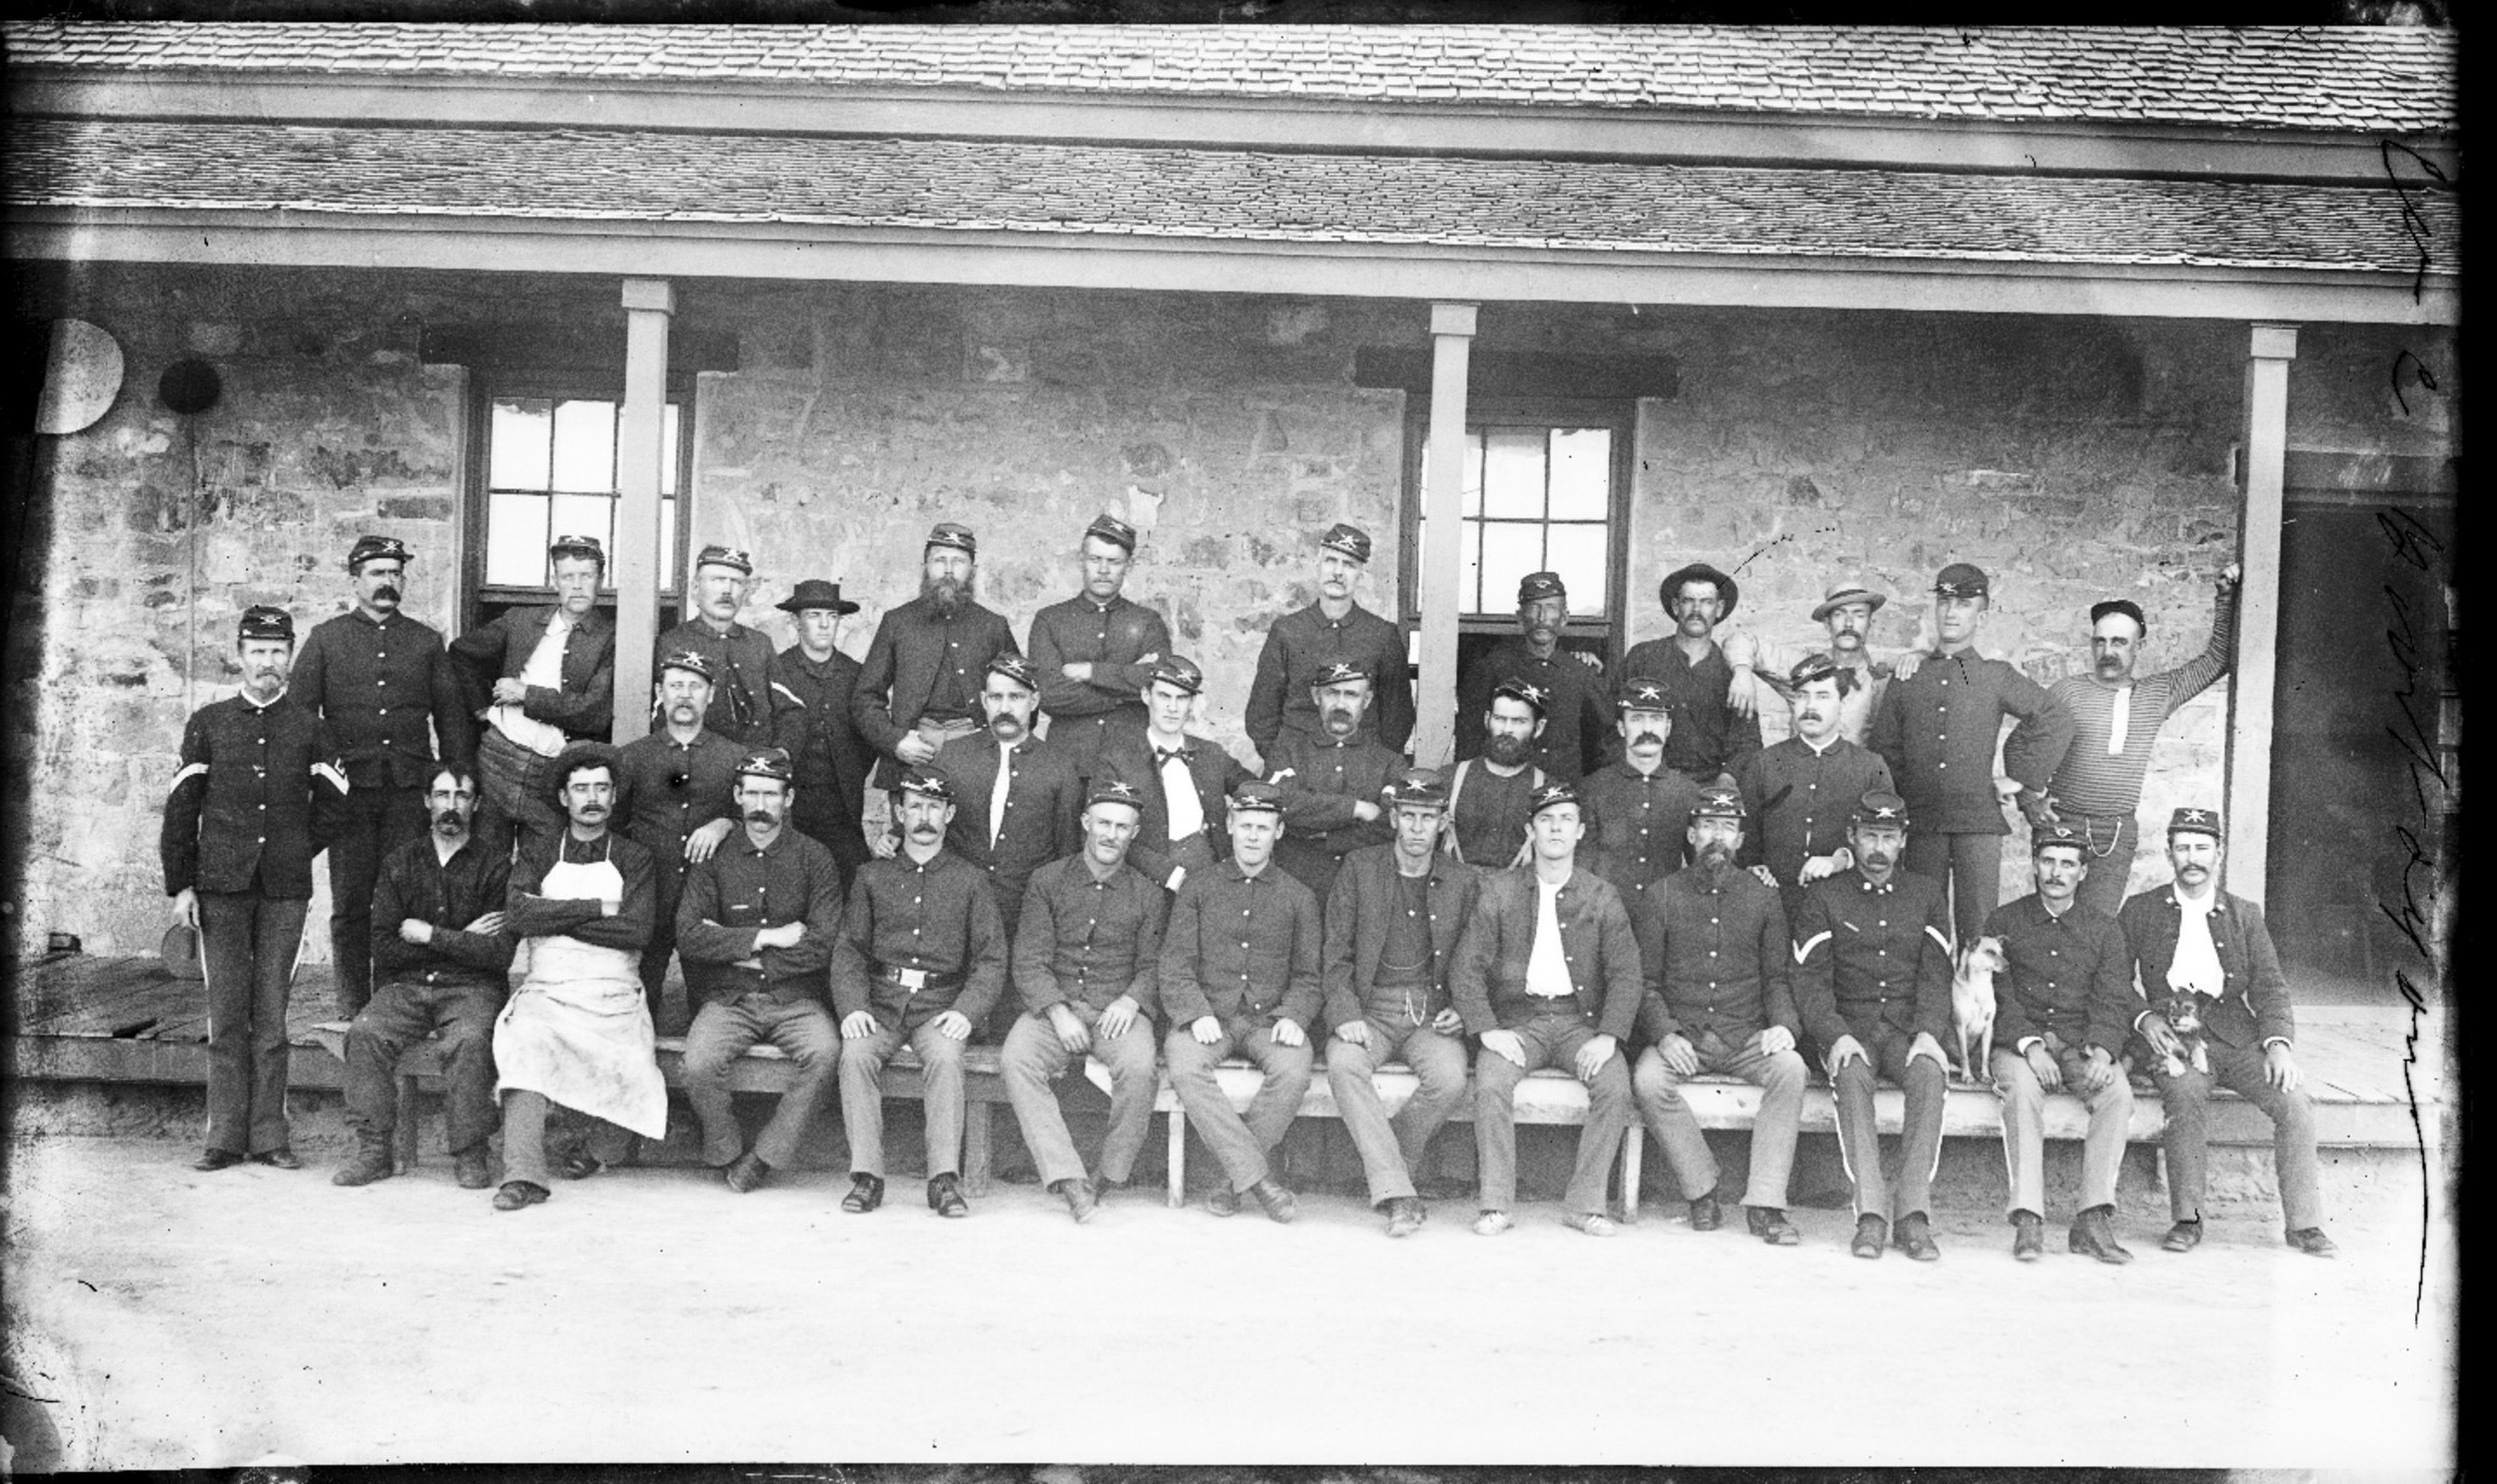 Fort Lyon and Fort Union - Company C, 22nd Inffantry at Fort Lyon, Colorado. Soldiers are pictured sitting in front of a builiding. 1st Sergent Horner is pictured at the far right.  Neg #5